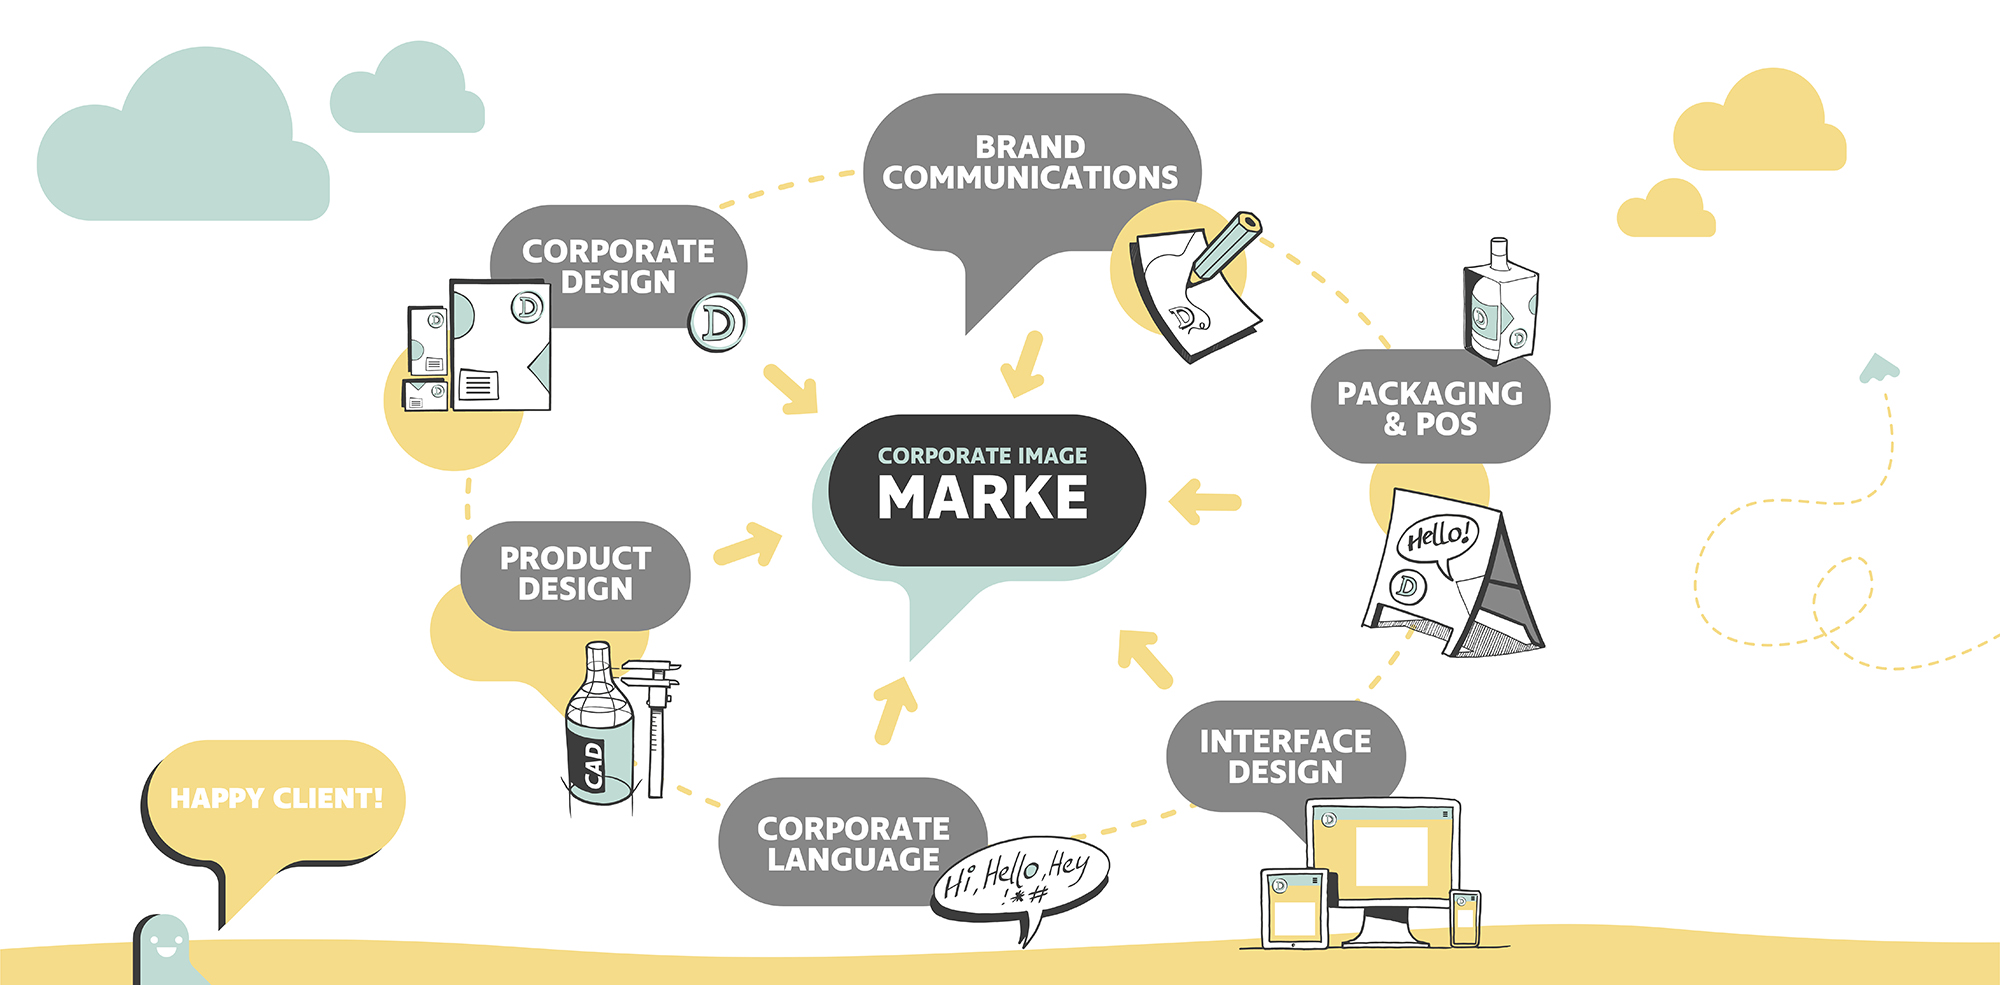 Corporate Design, Brand Communication, Packaging, Product Design, Corporate Language, Interfacedesign